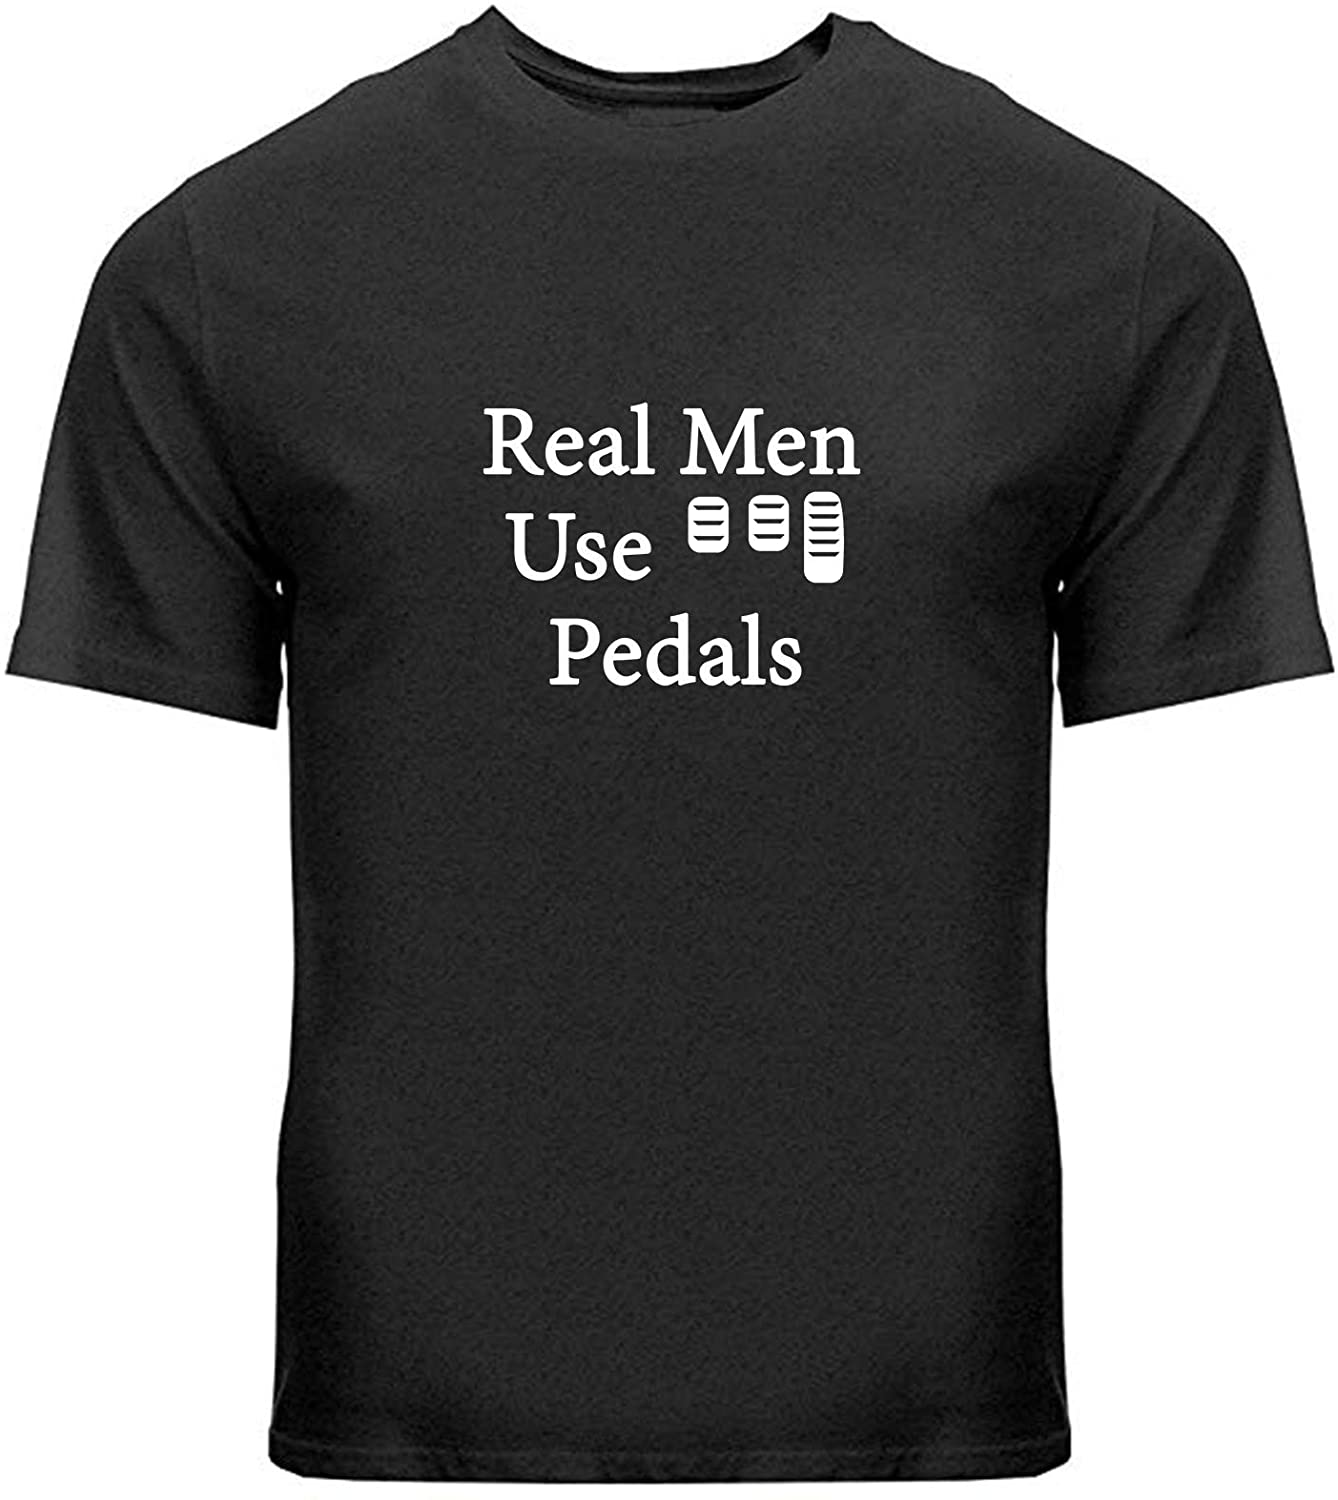 Manual Transmission Adult Unisex Tee T-Shirts Gift Print Car Driver Real Men Use 3 Pedals